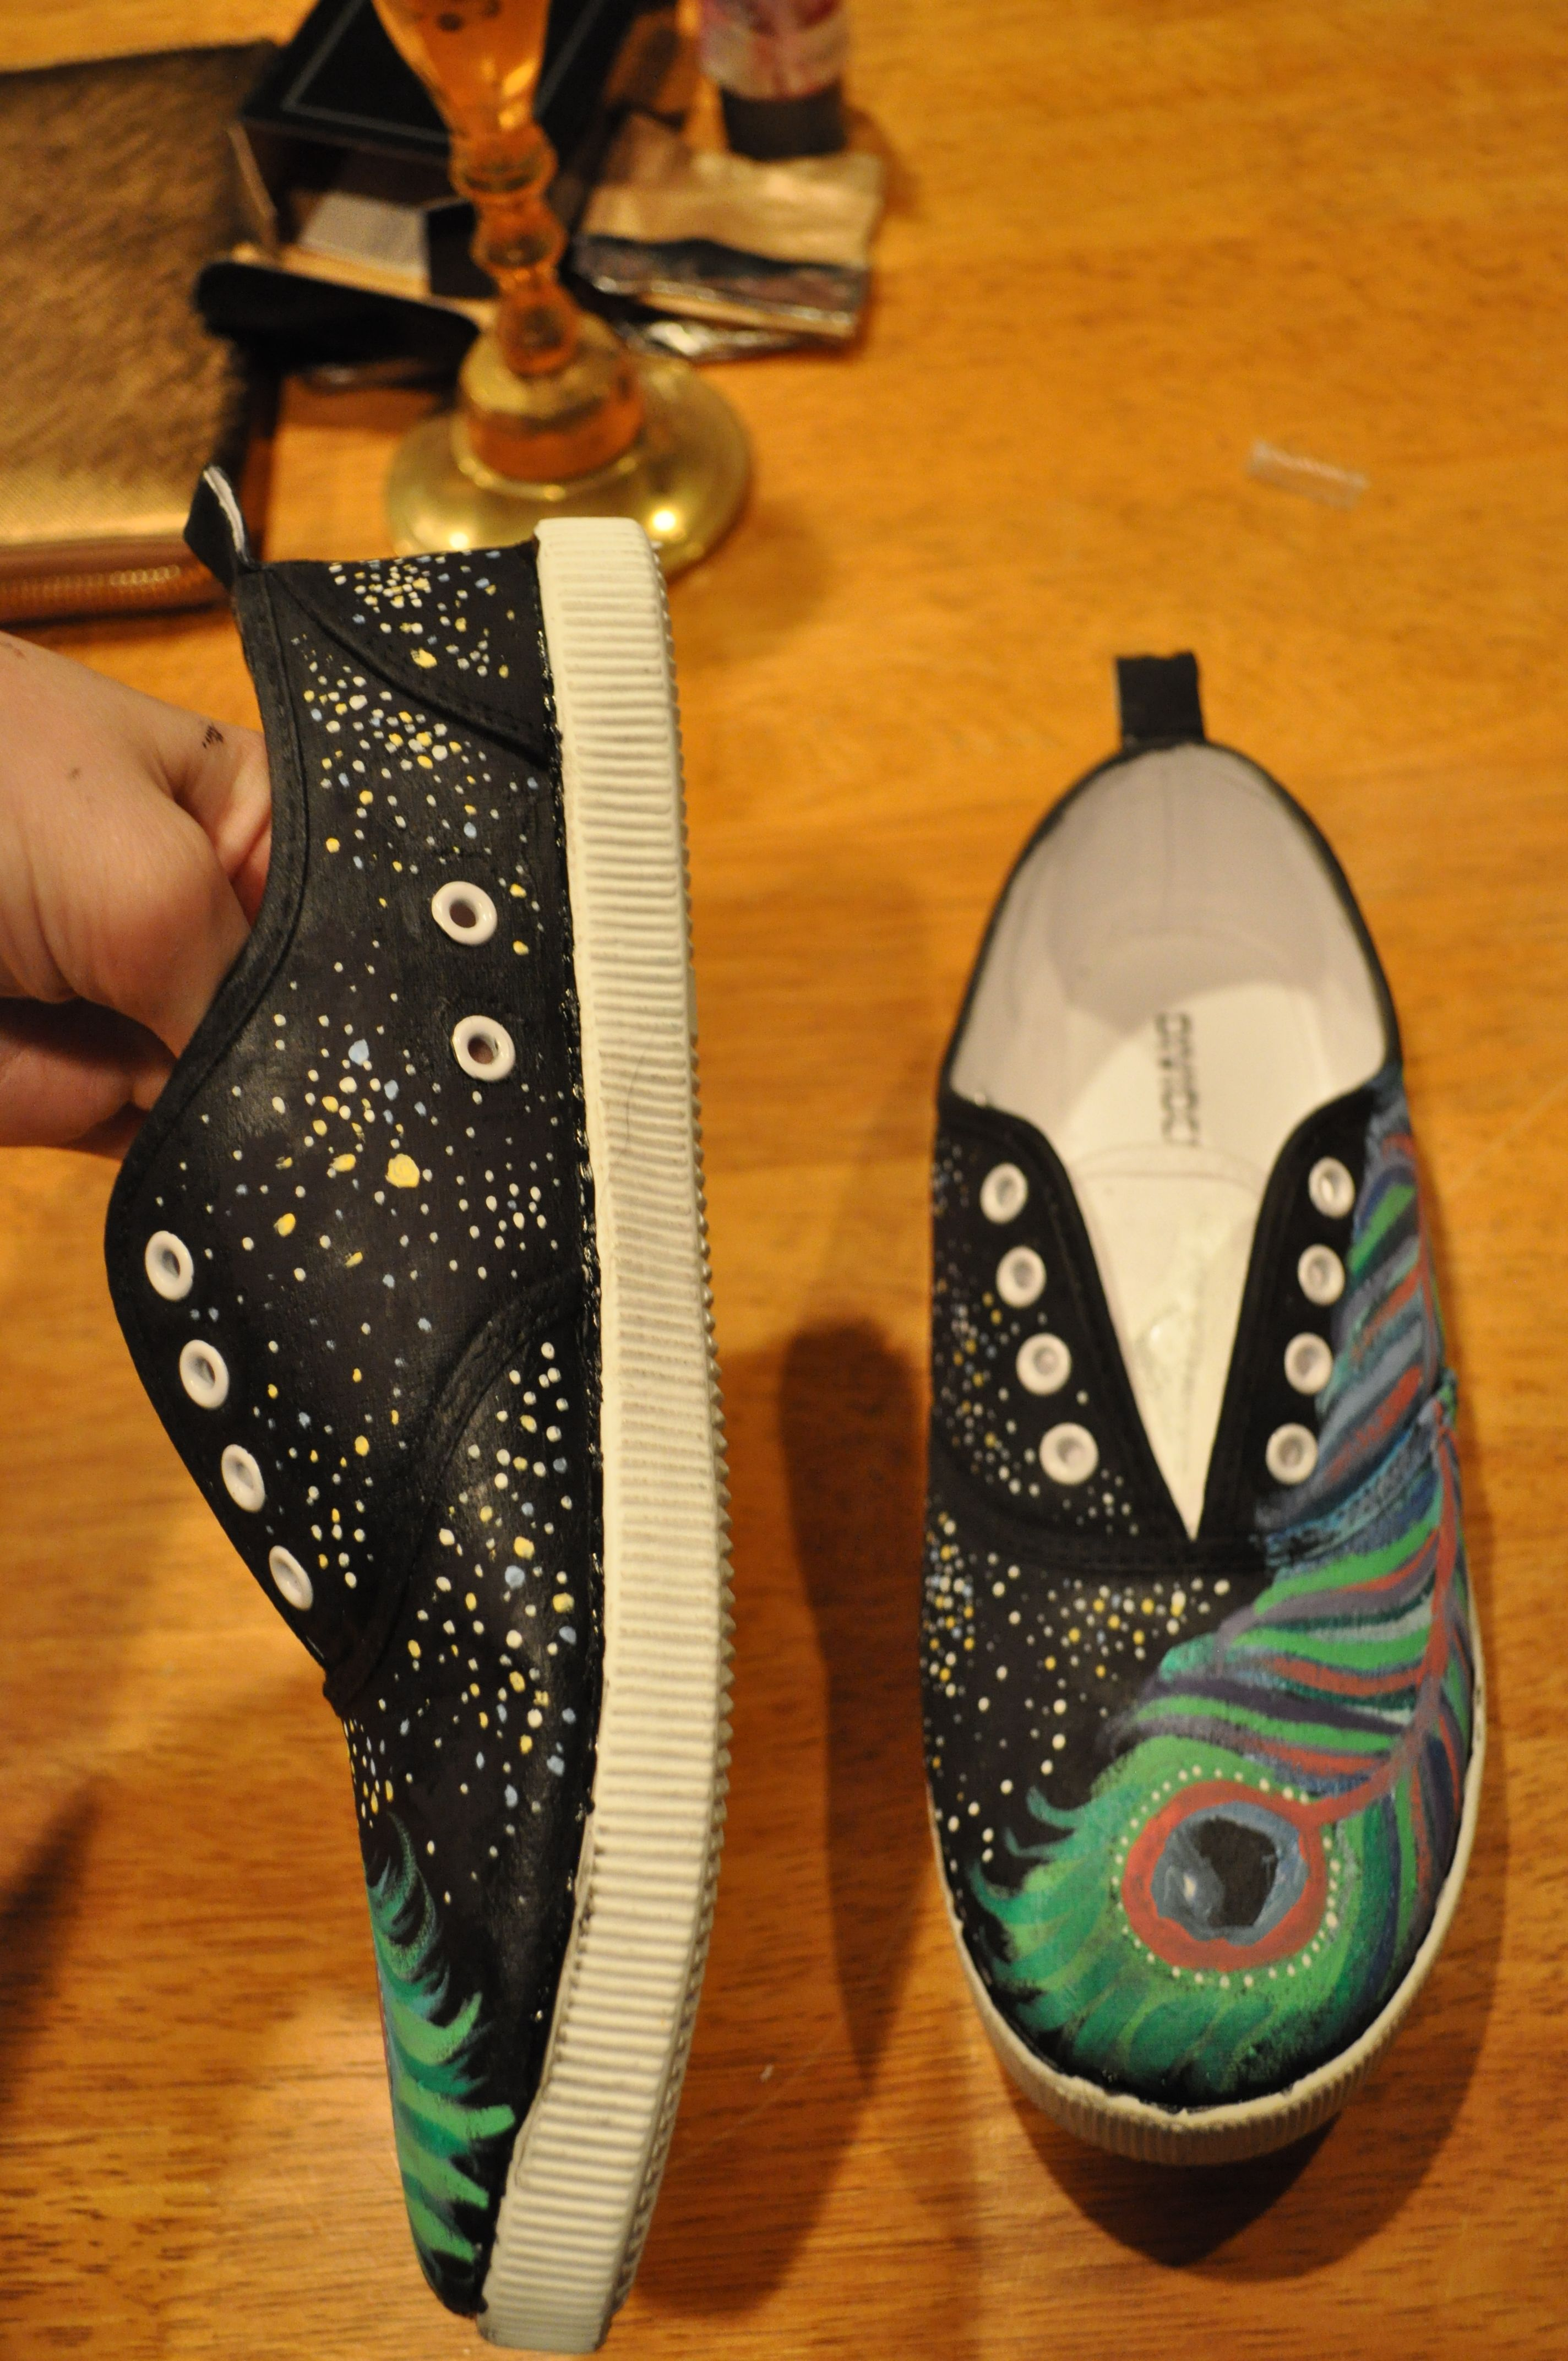 I painted these shoes myself for my friend nicki!